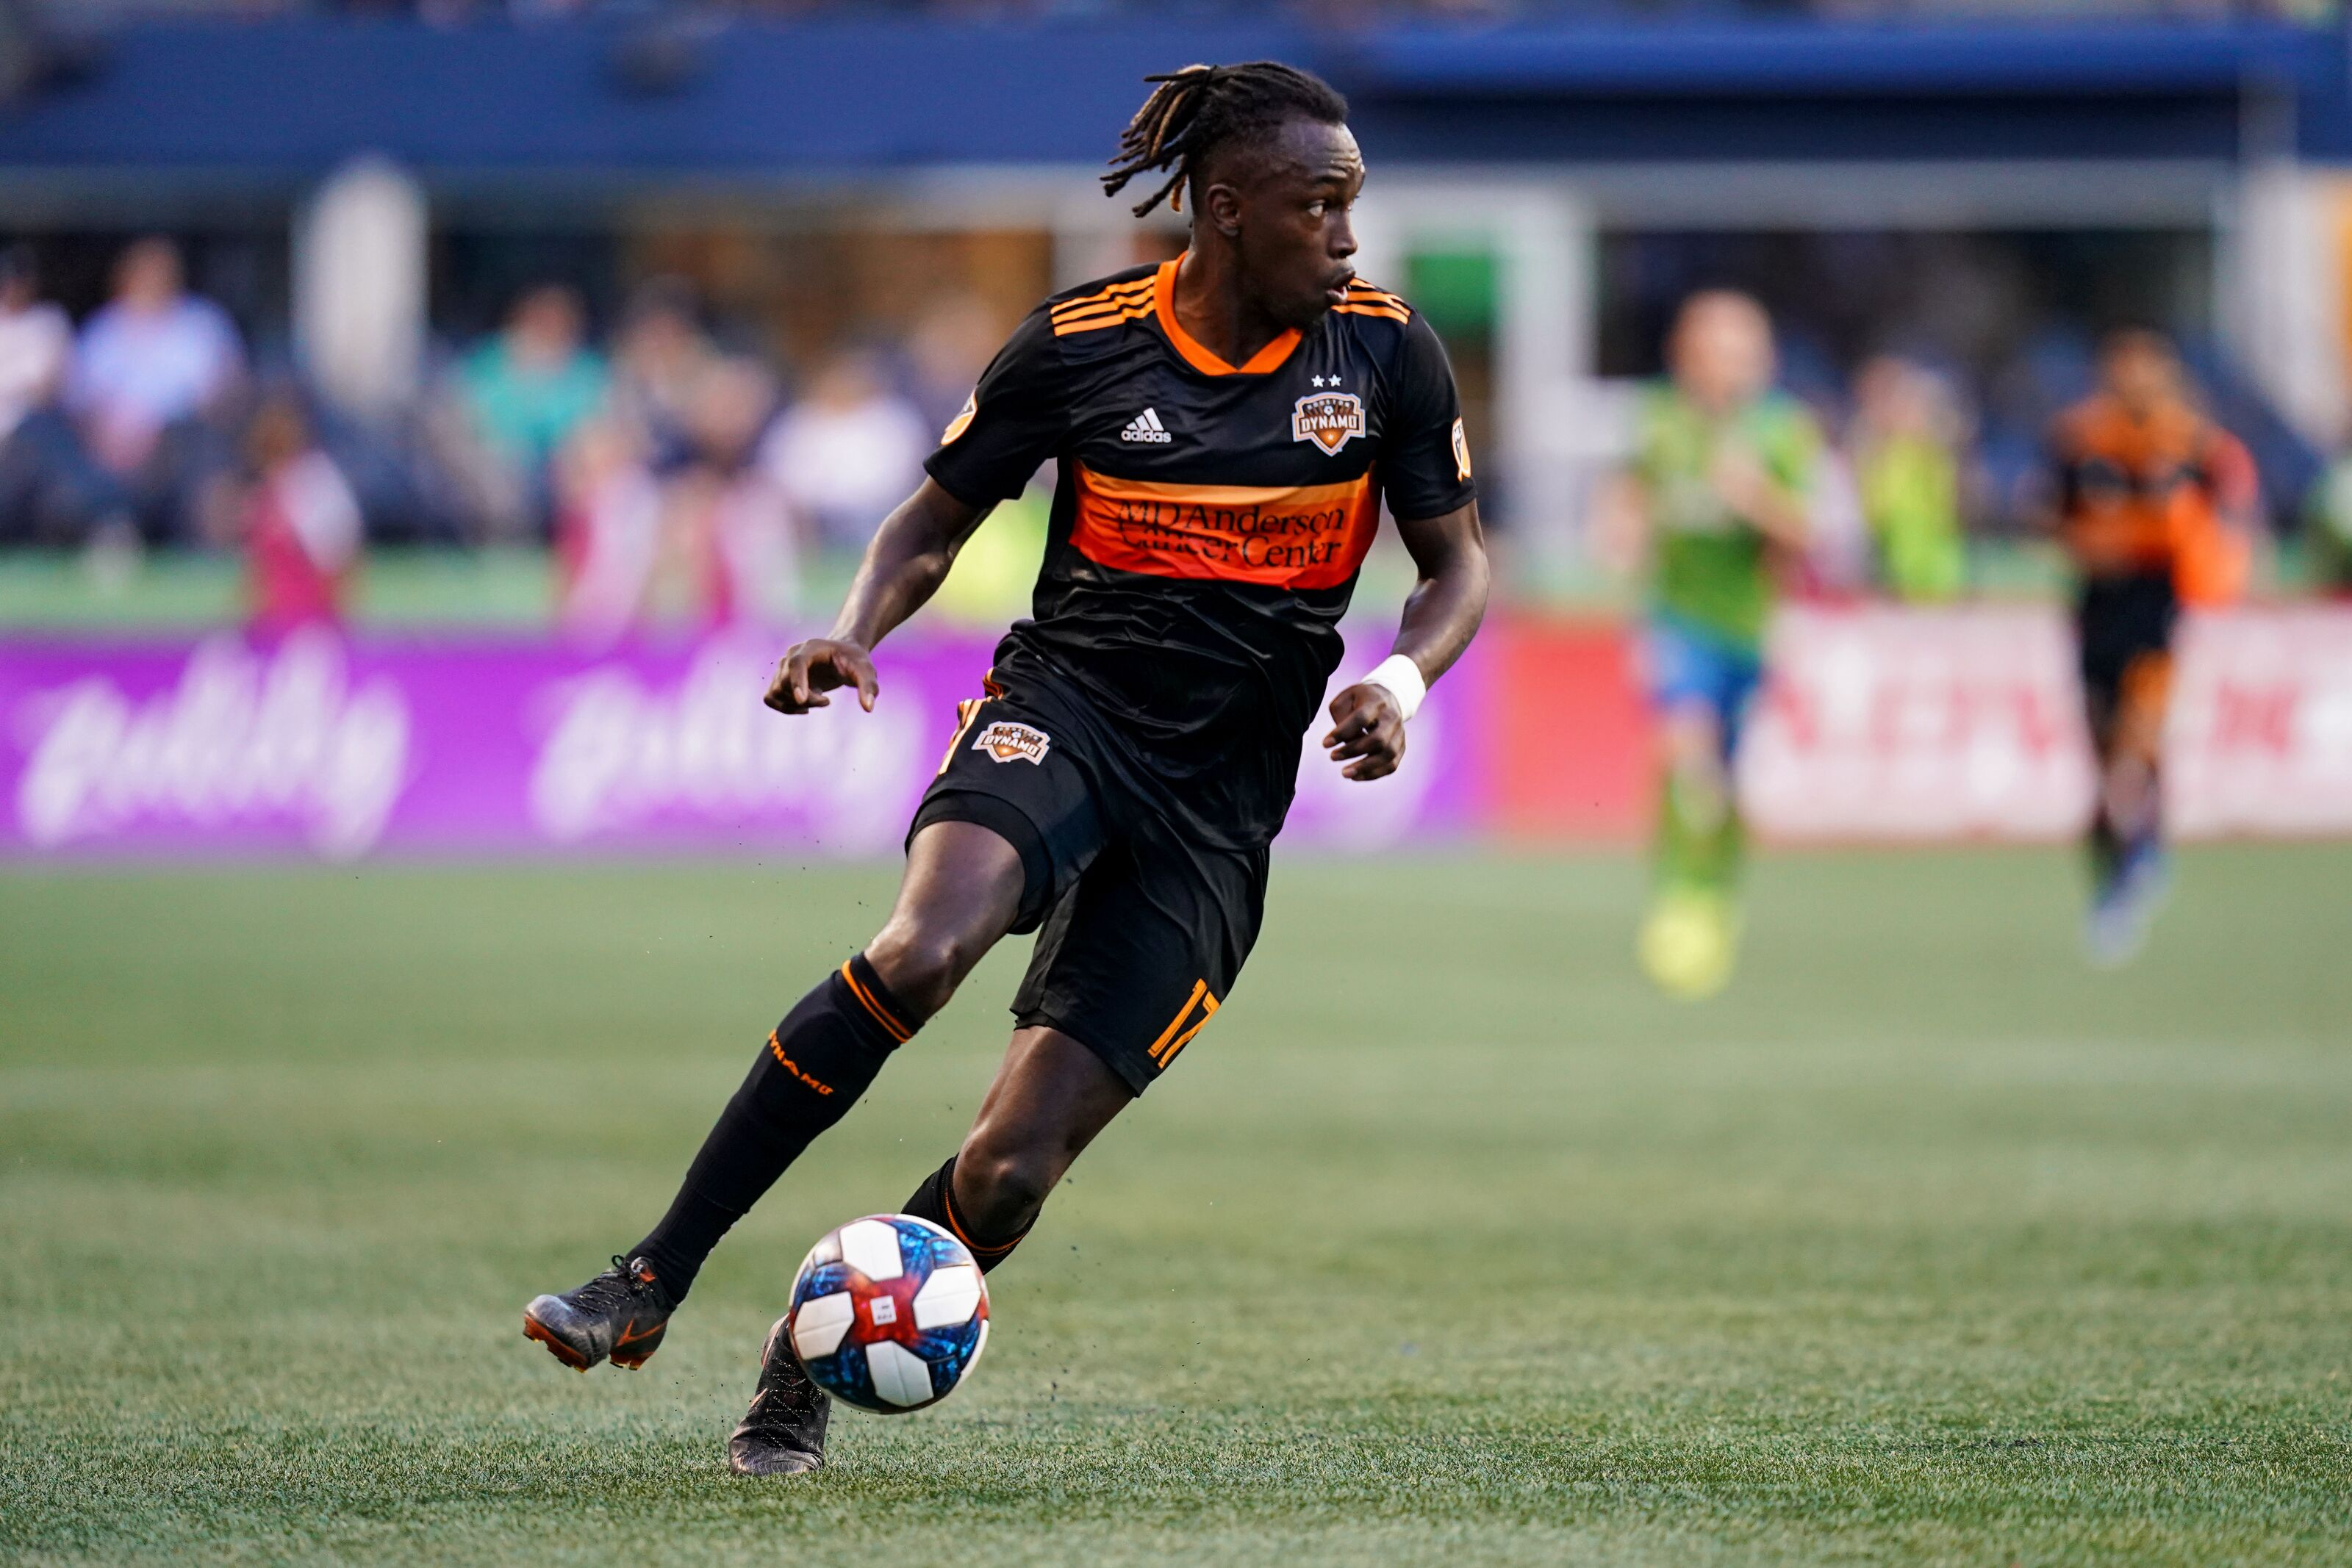 Houston Dynamo Vs LAFC: The test of the best